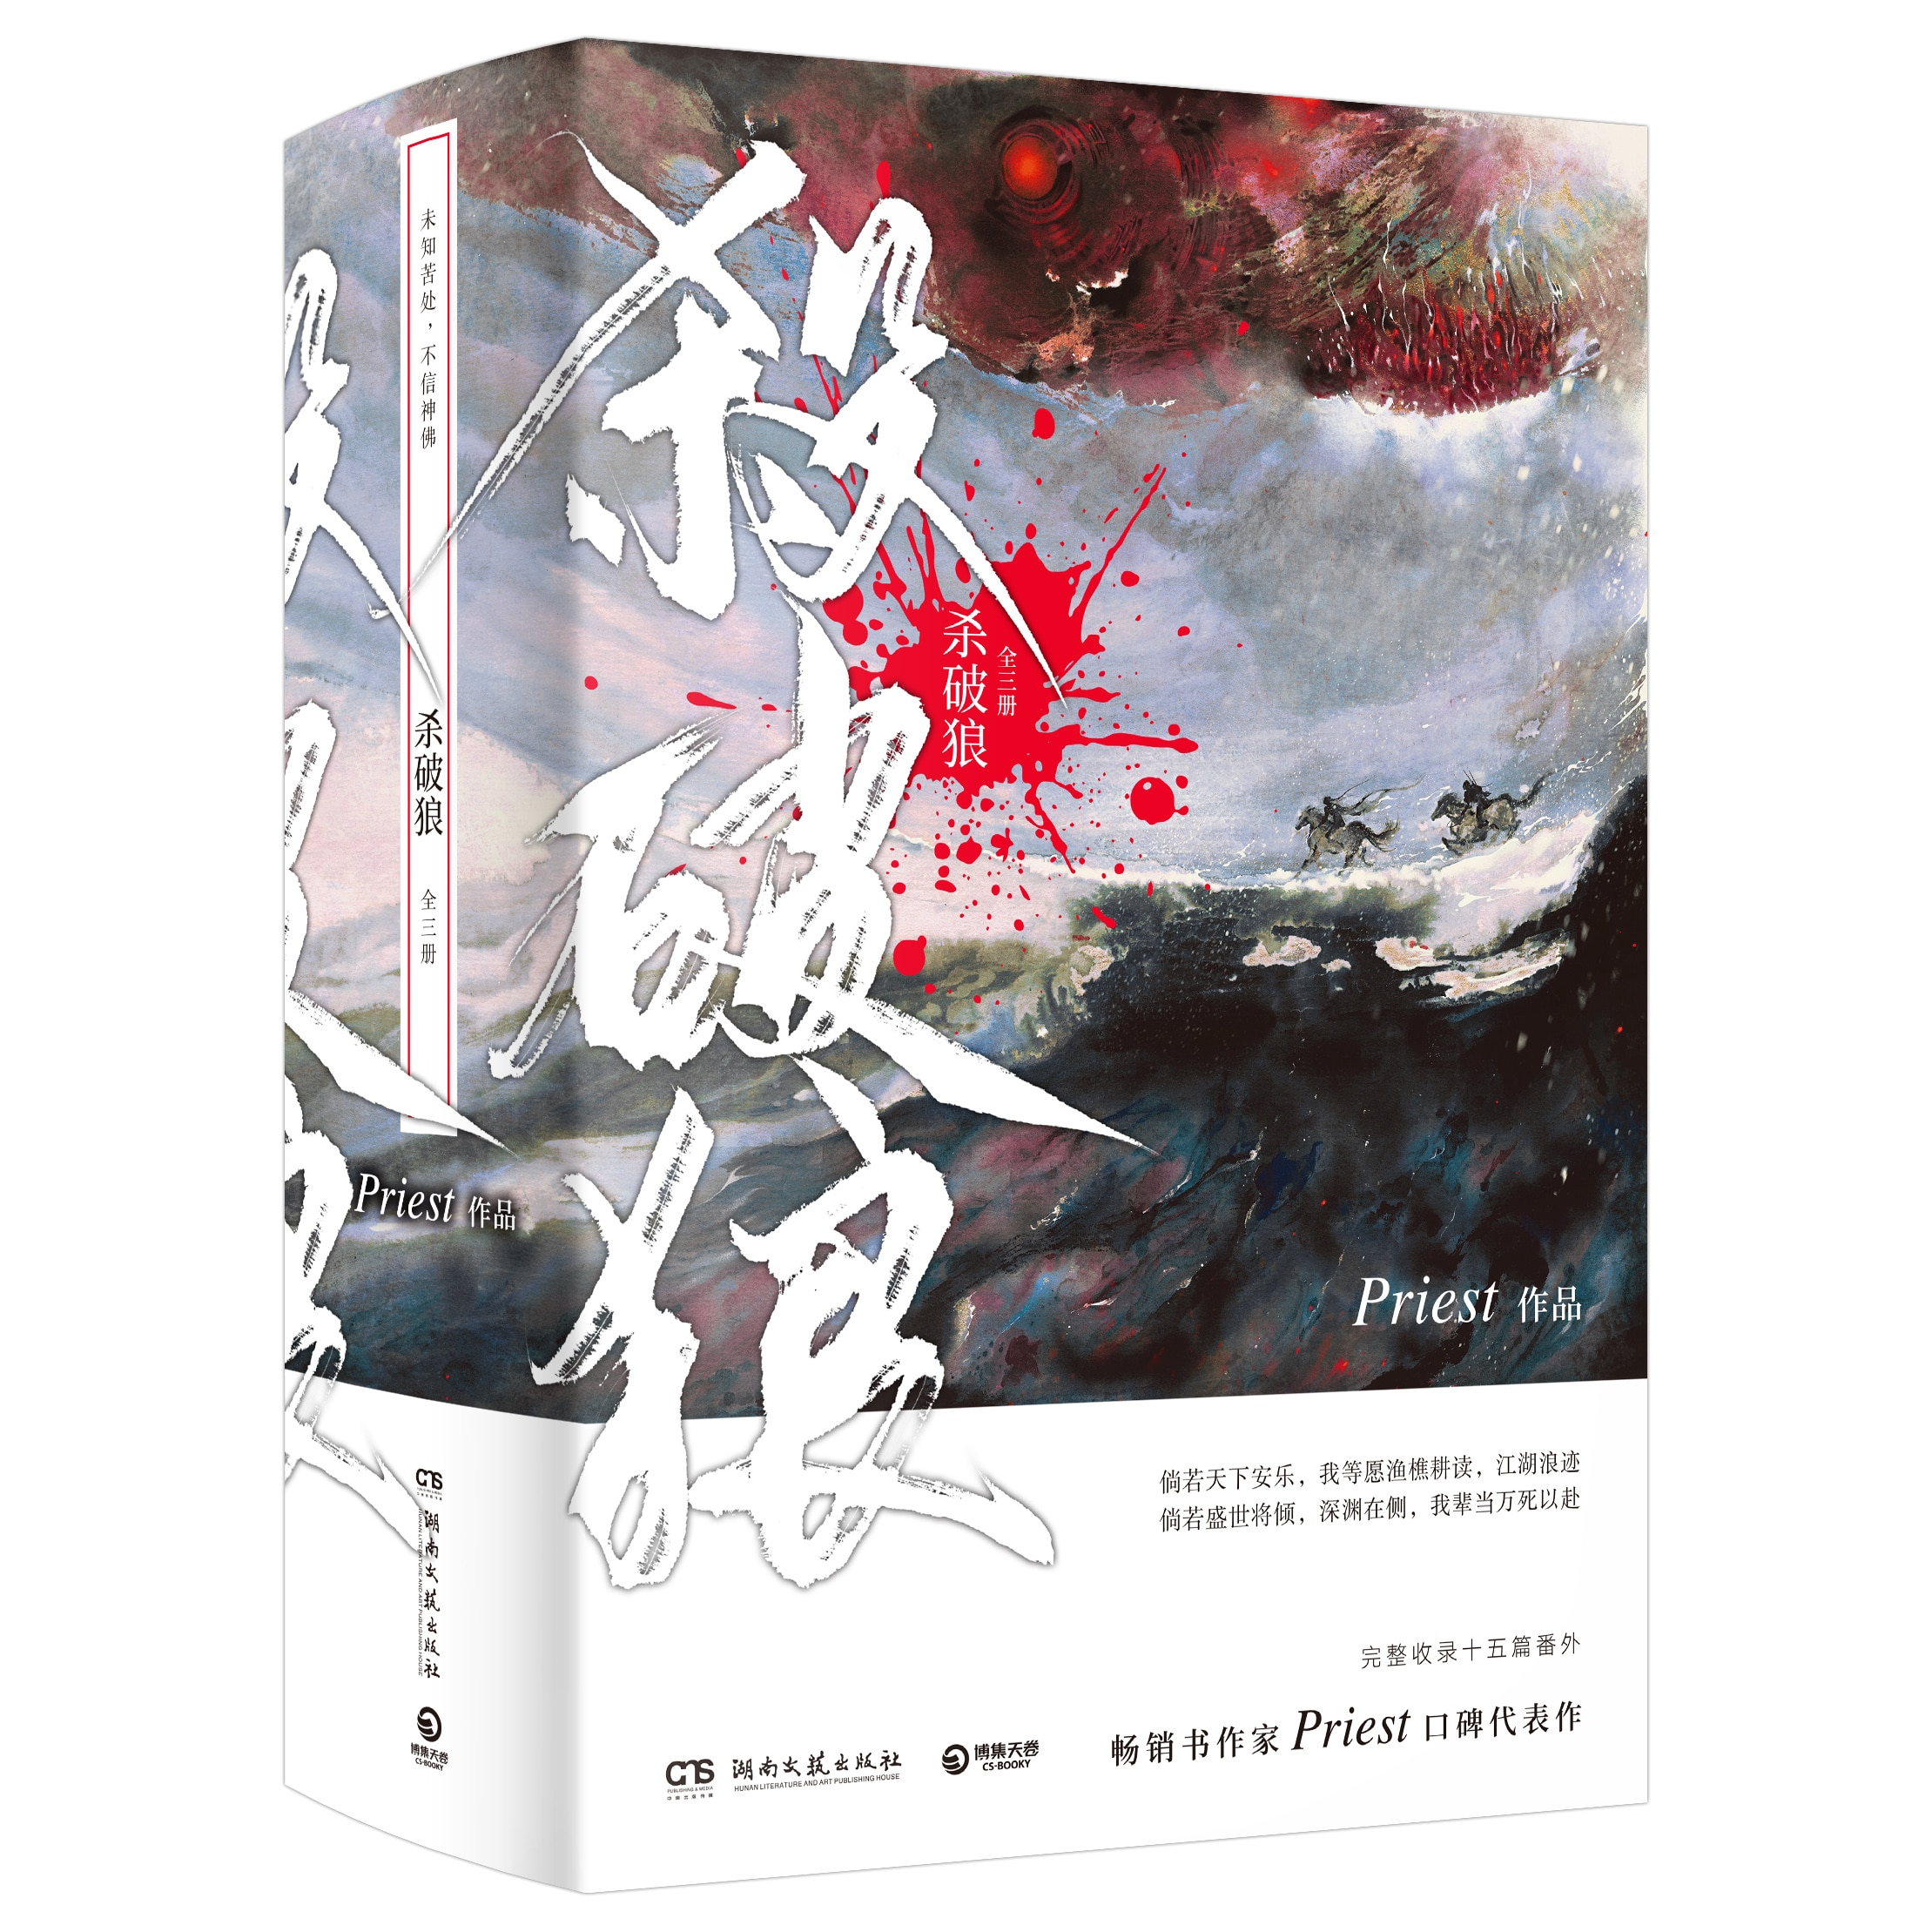 3 Book/Set Sha Po Lang Novel By Priest Chivalrous Fantasy Martial Arts Fiction Books Chinese Edition Adult Love Novels Youth